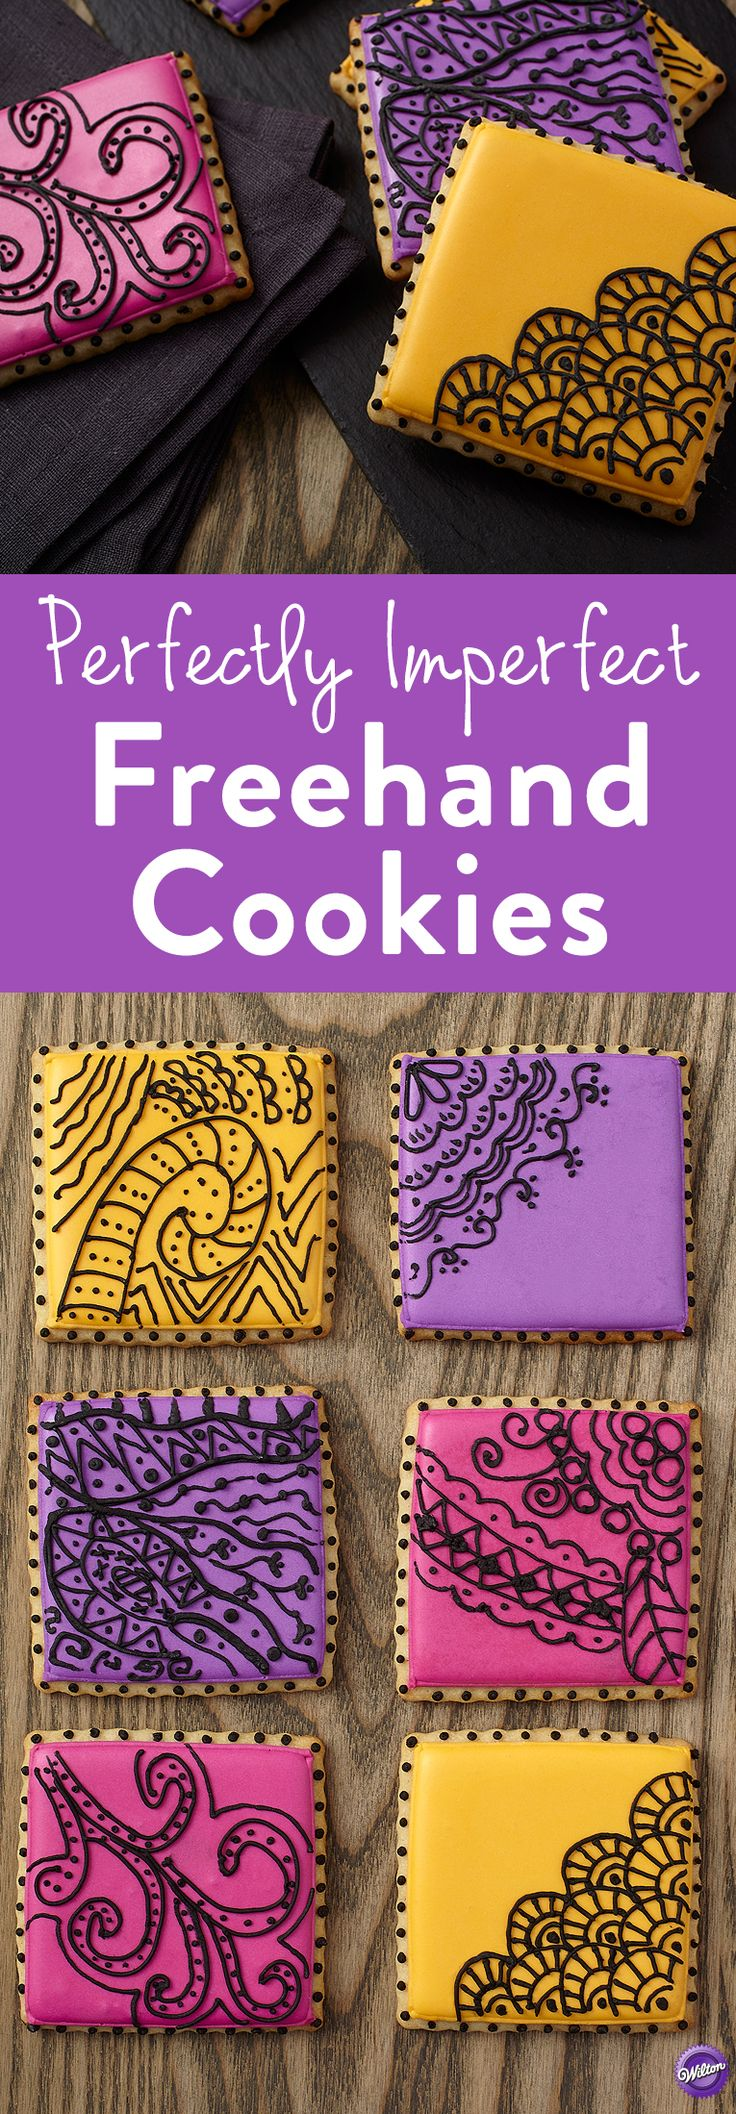 """How to Make Freehand Cookies - Bake cookies and decorate them with patterns and prints drawn freehand for a one-of-a-kind look. The scalloped edge of the cookie picks up on the flowing black lines of royal icing piped on brilliantly colored royal icing backgrounds. Don't fret about """"getting it right,"""" the trend calls for perfectly imperfect designs!"""